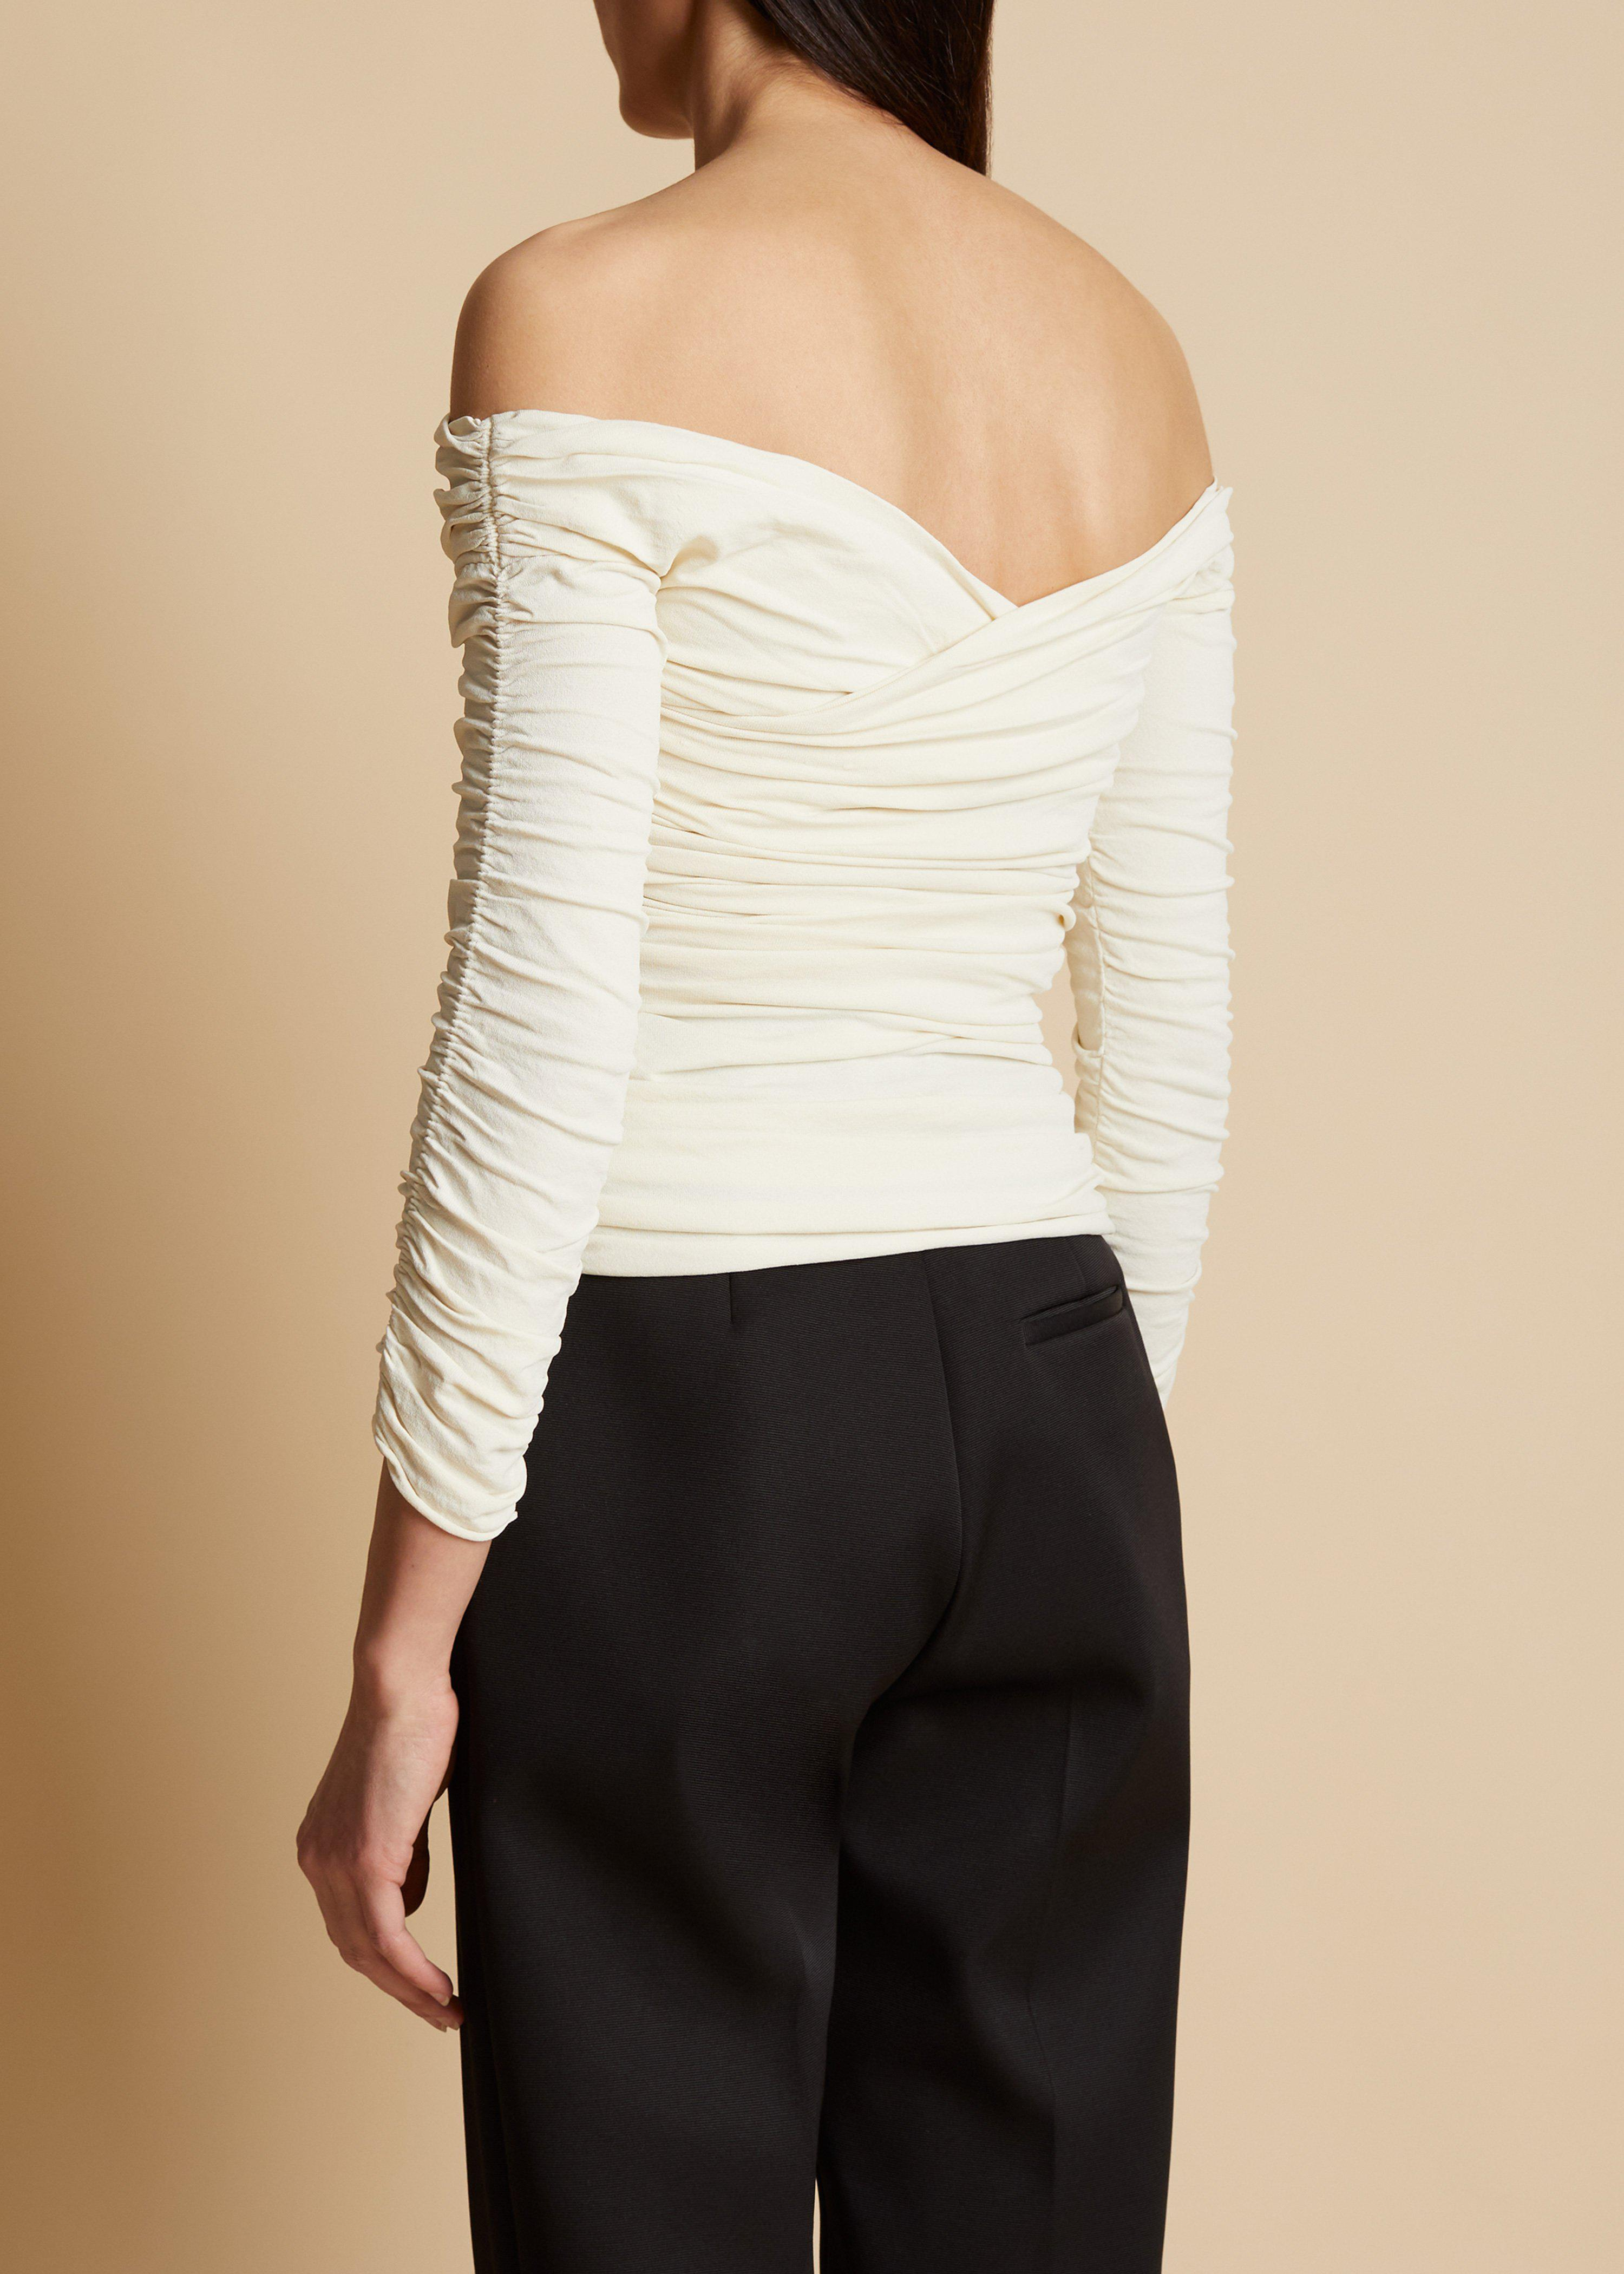 The Elsa Top in Ivory 4